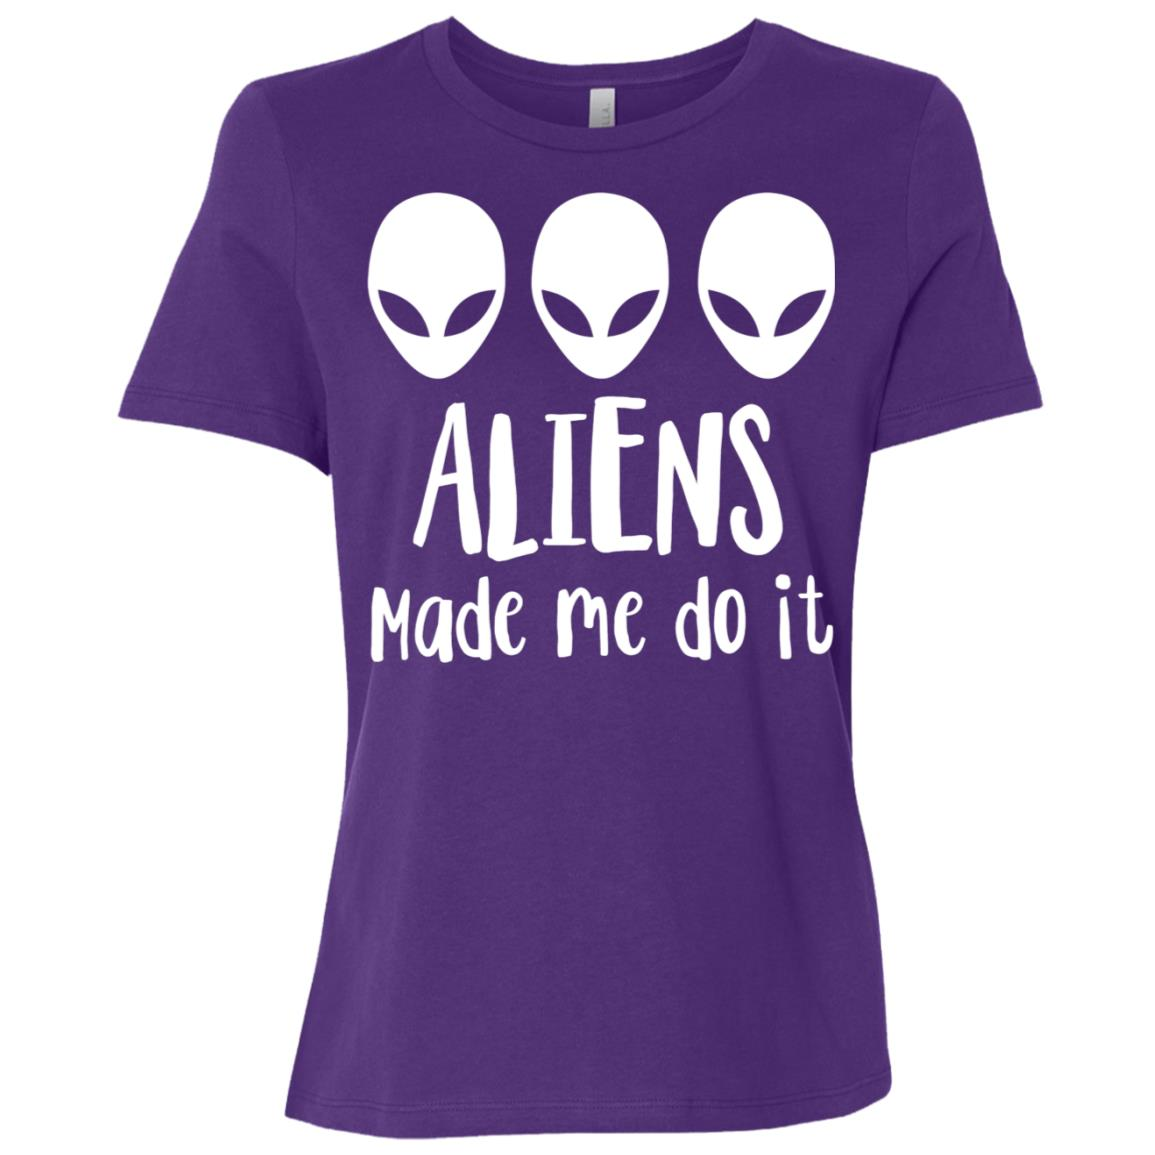 Aliens made me do it Space Sarcastic Funny Tee Women Short Sleeve T-Shirt